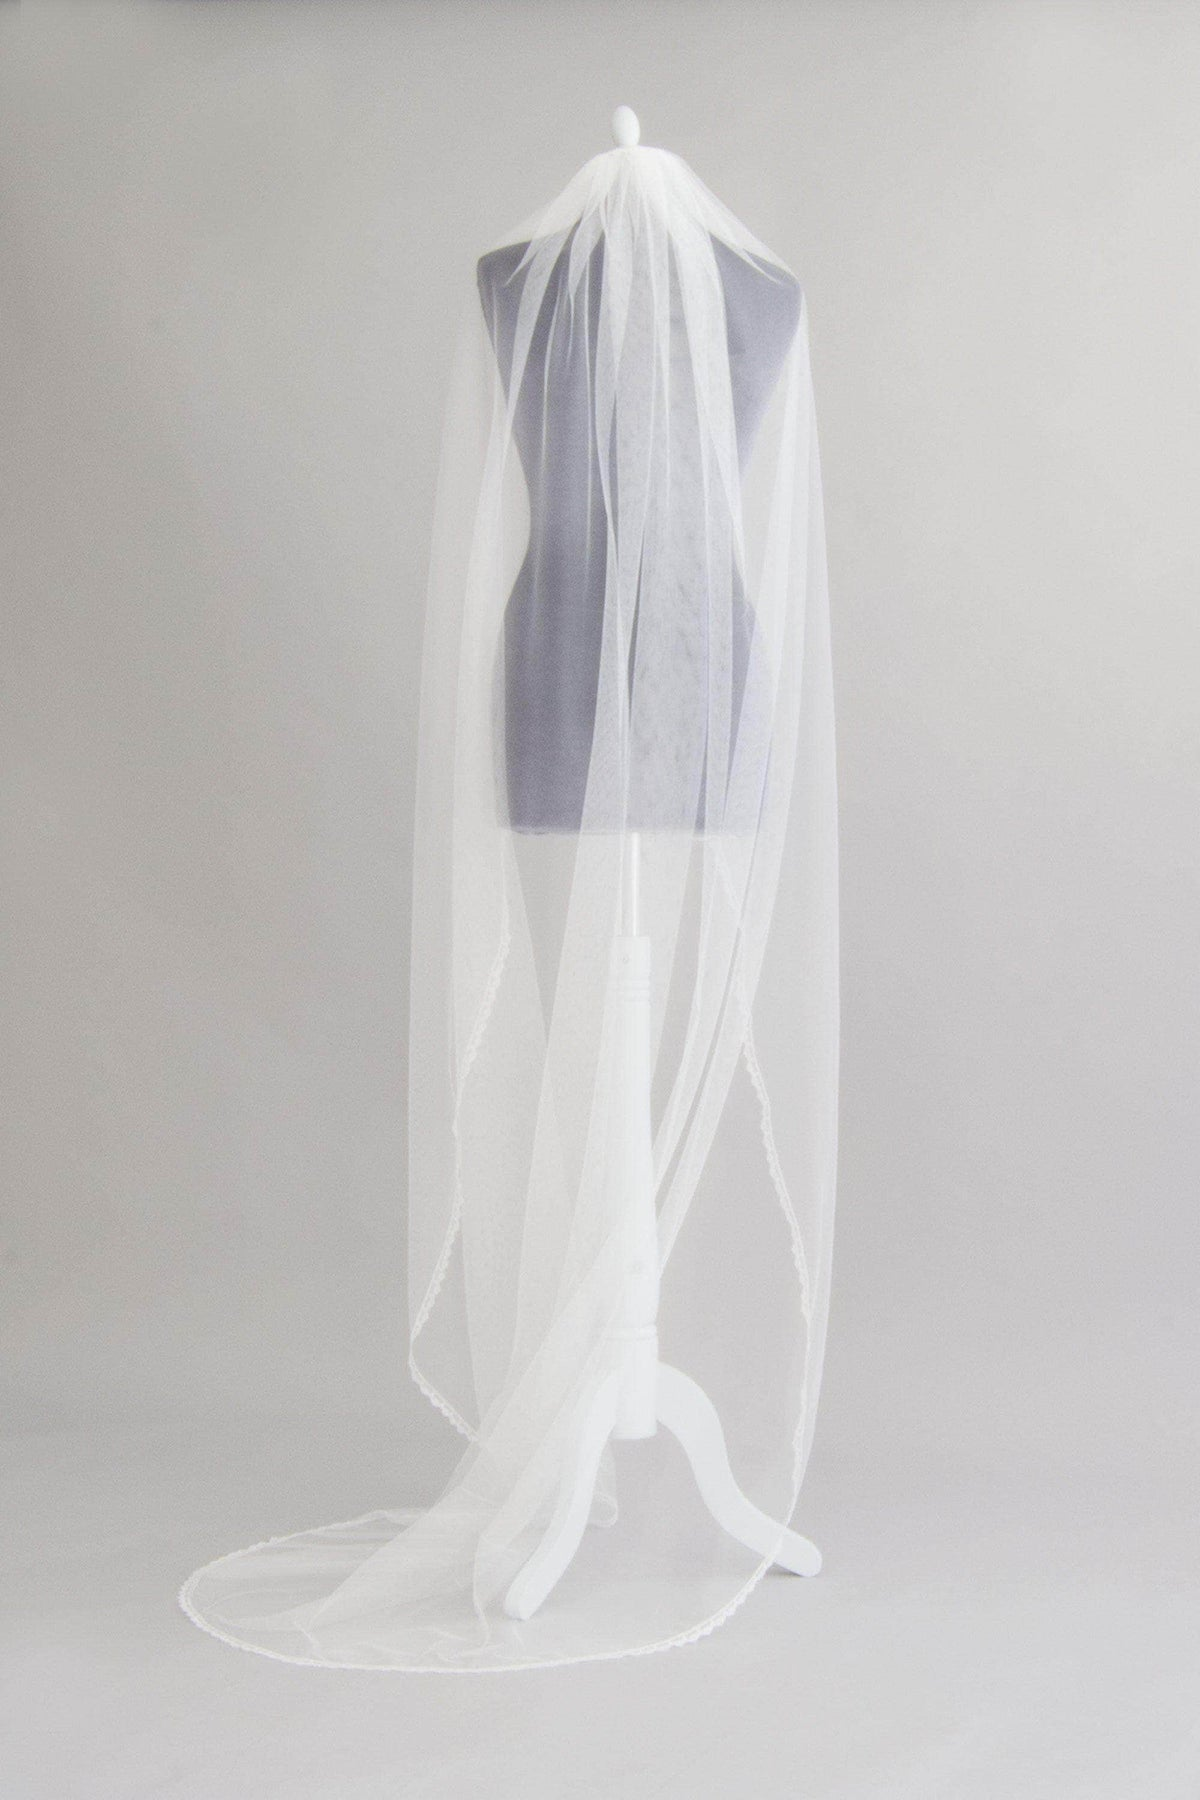 Wedding Veil Off-white / Cathedral length Delicate lace edged silk style single tier wedding veil - 'Aura'